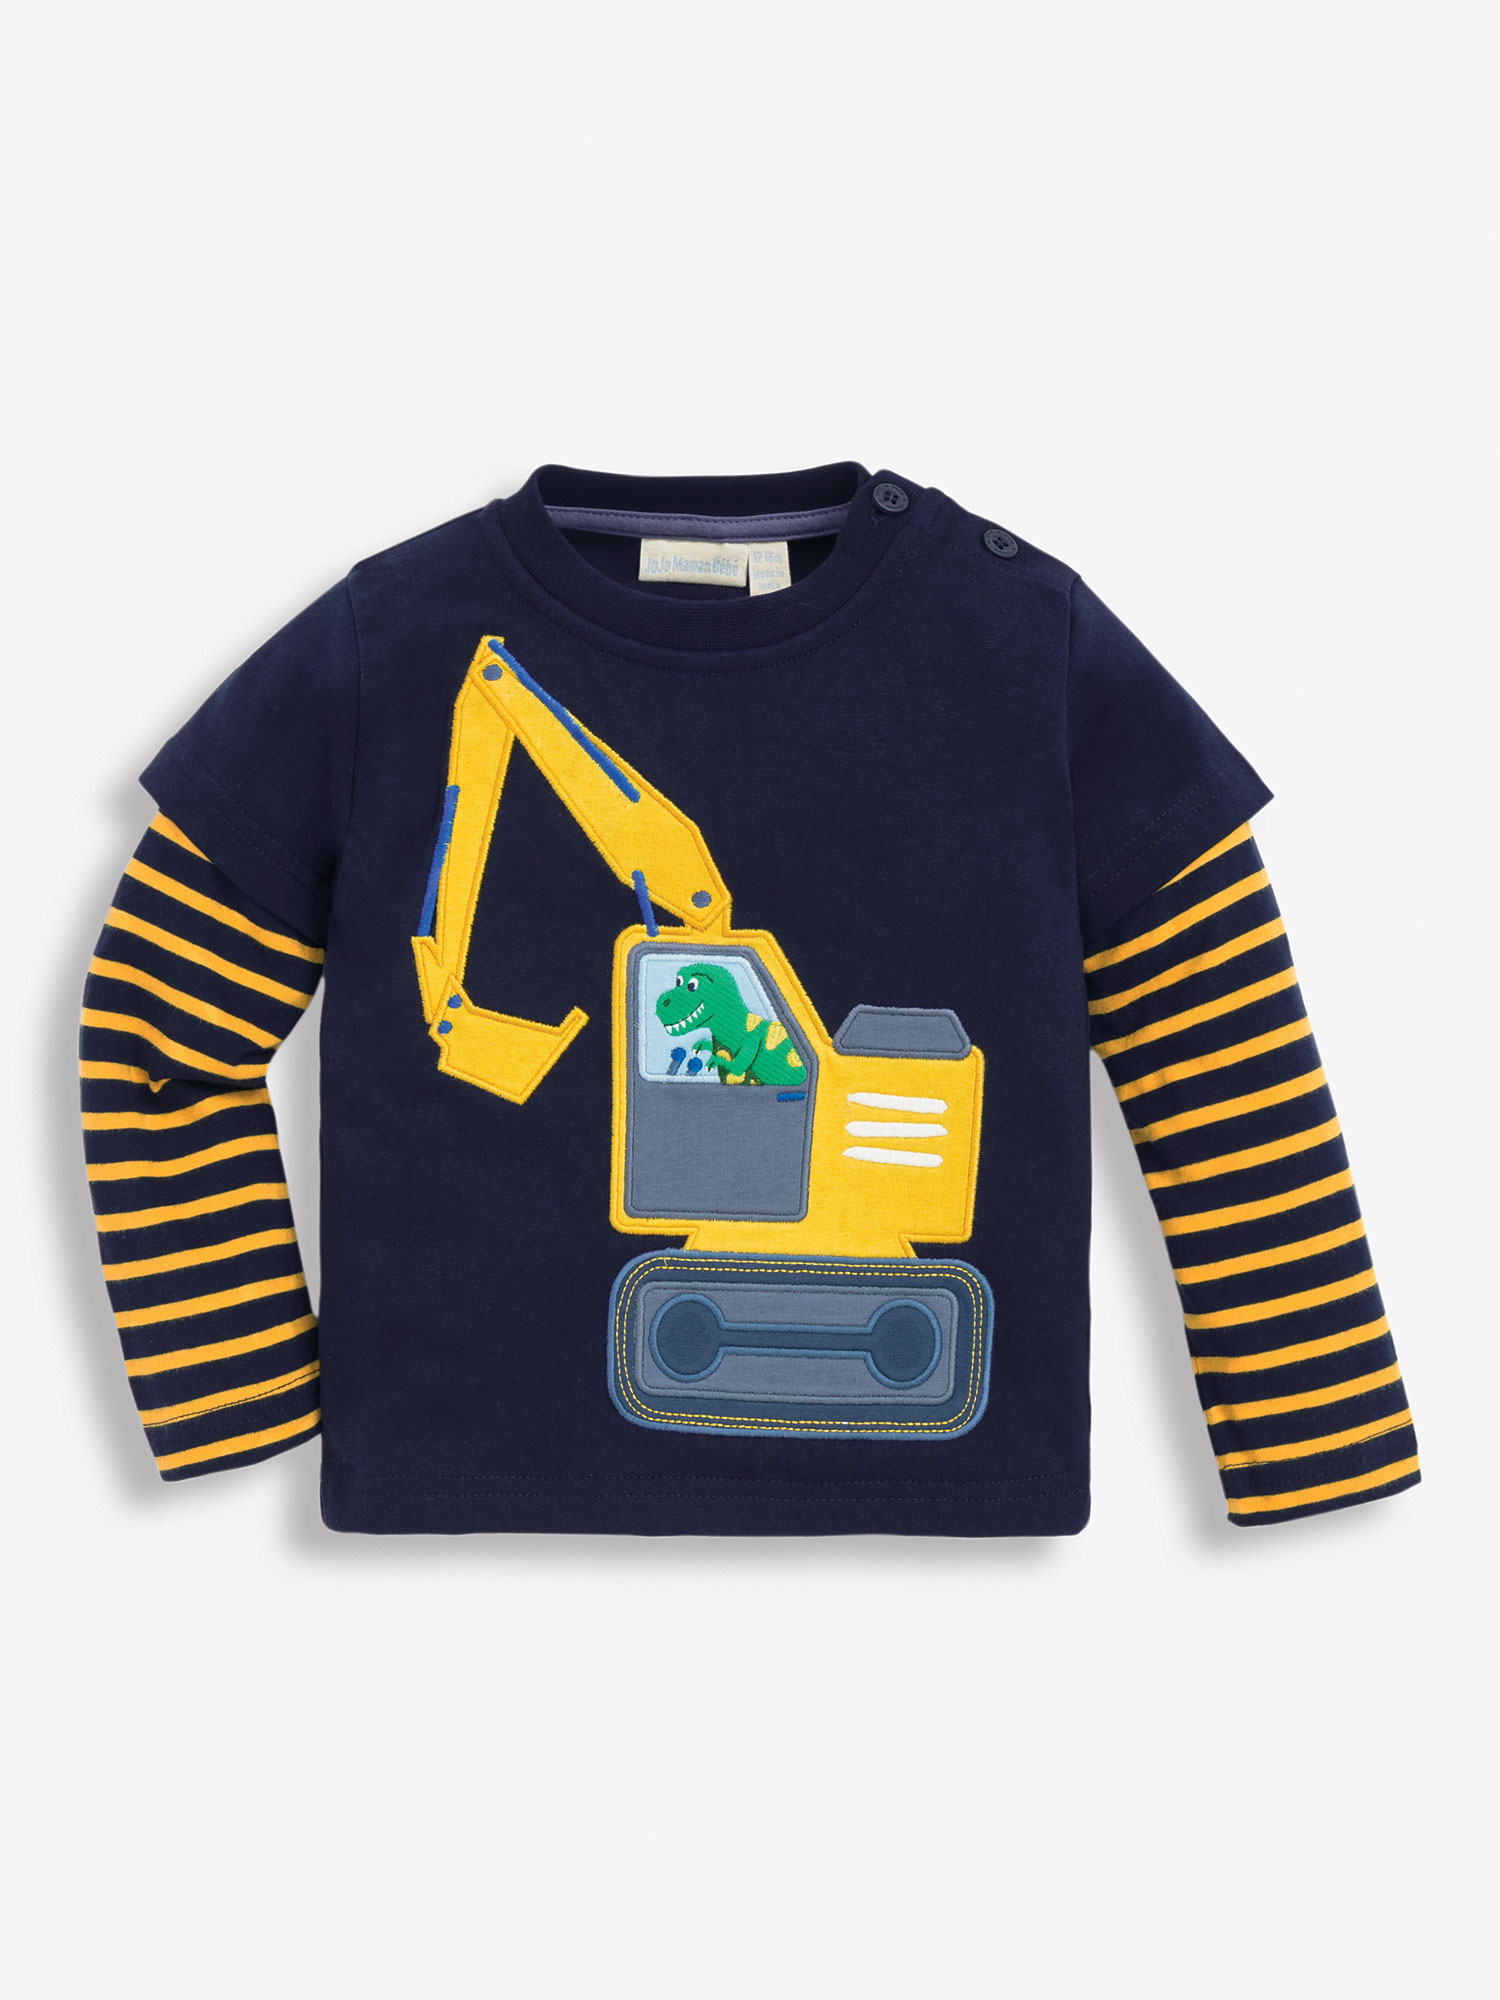 Kids' Navy Dinosaur Digger Top